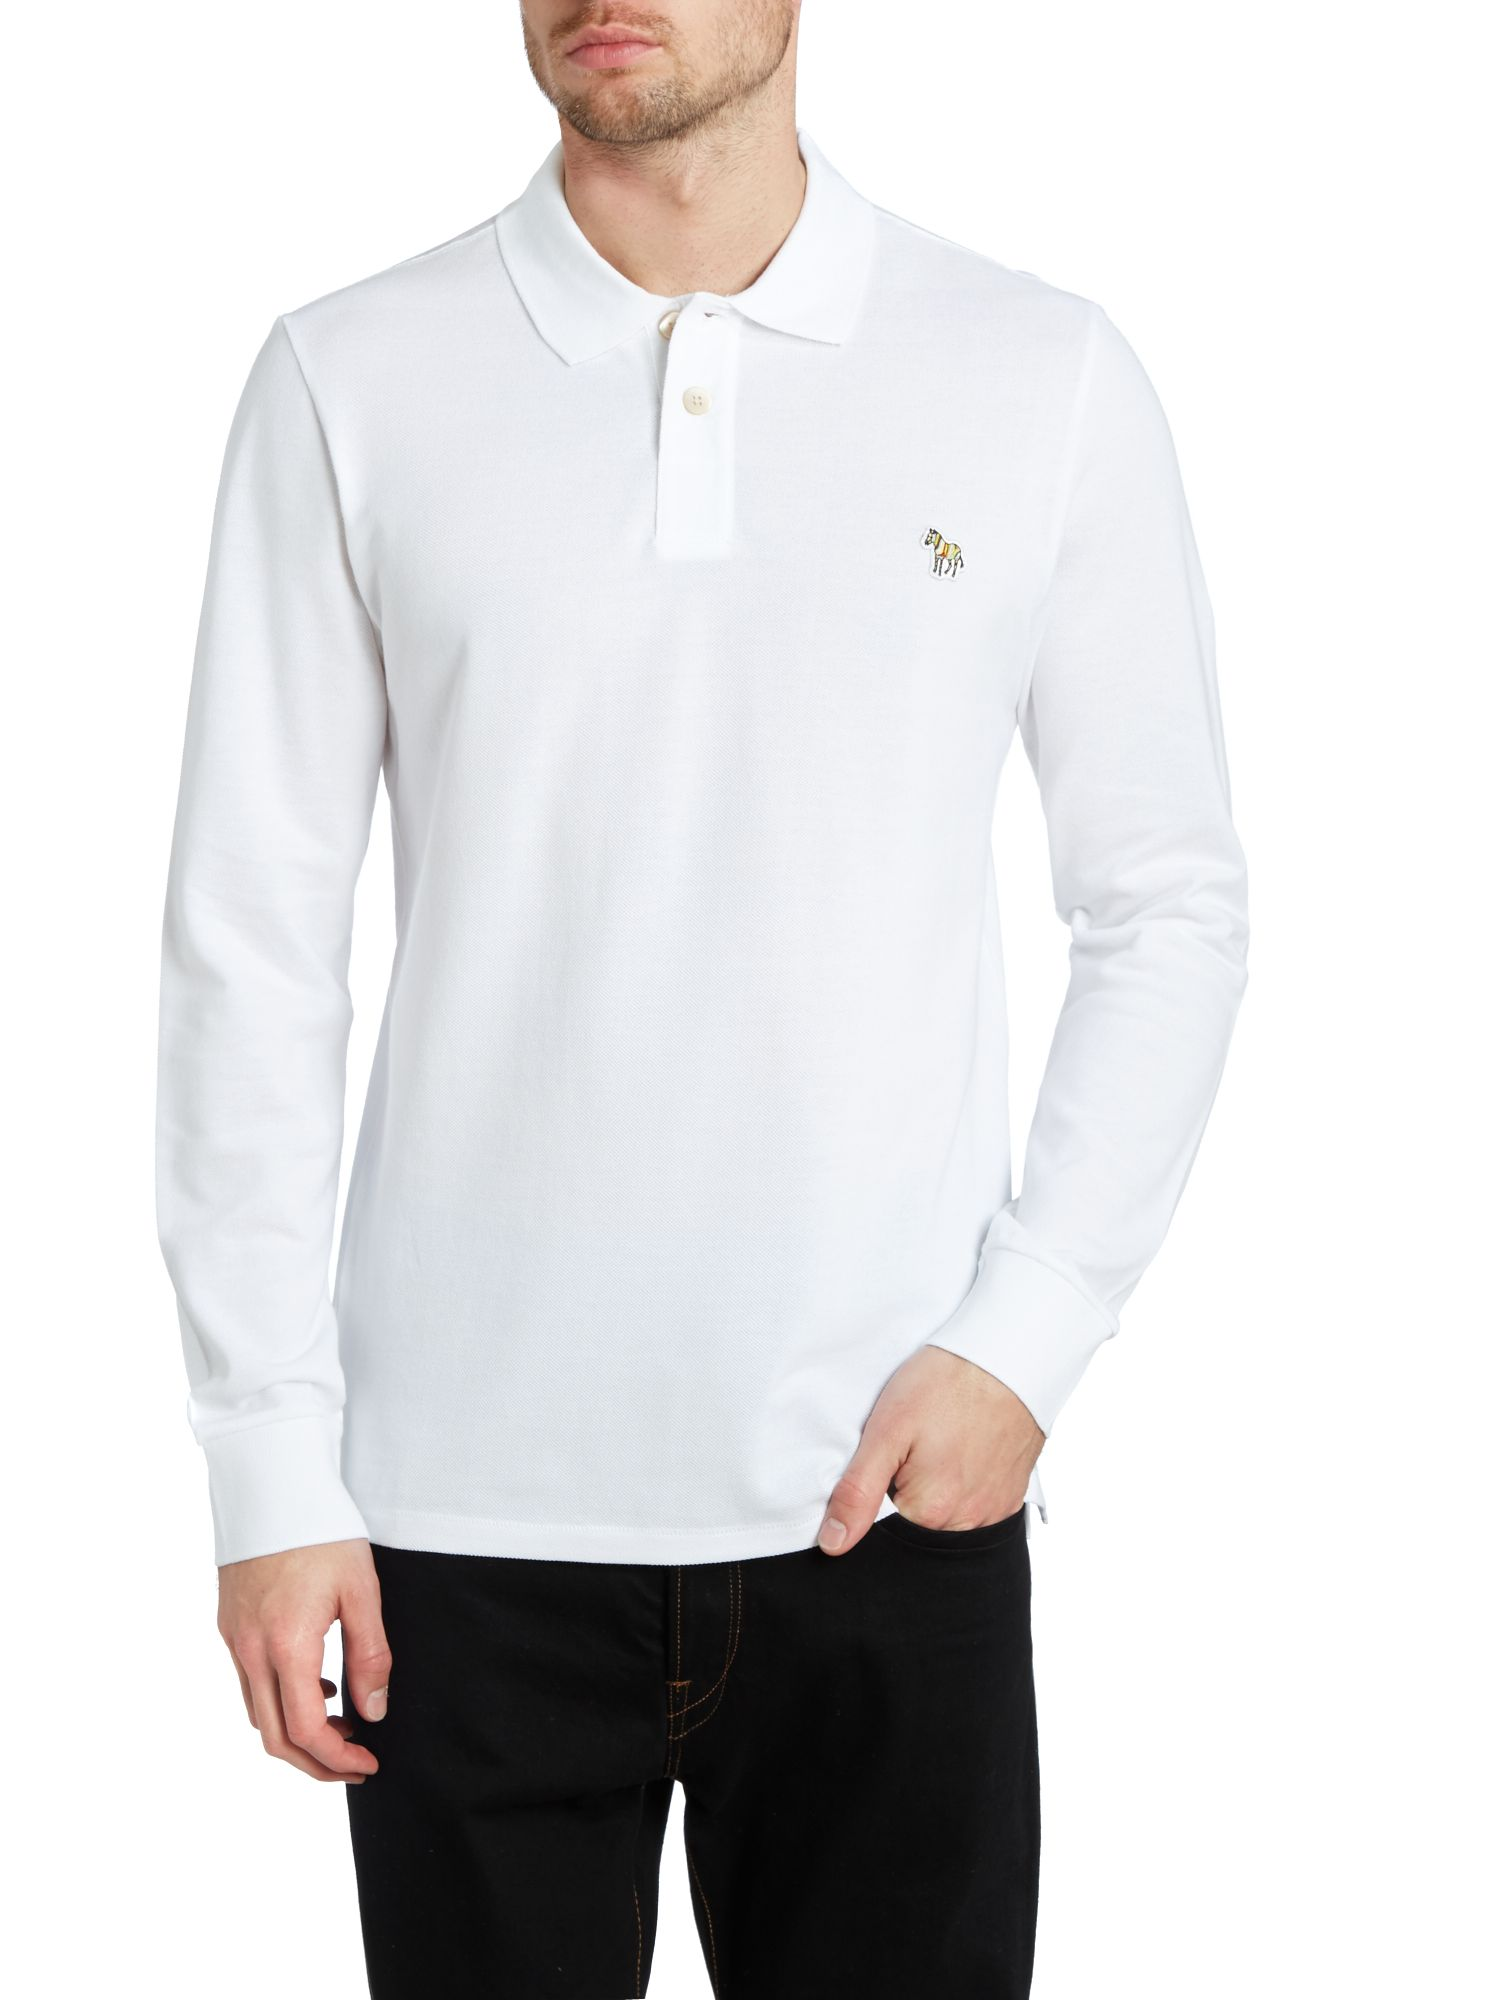 Long sleeve zebra logo polo shirt